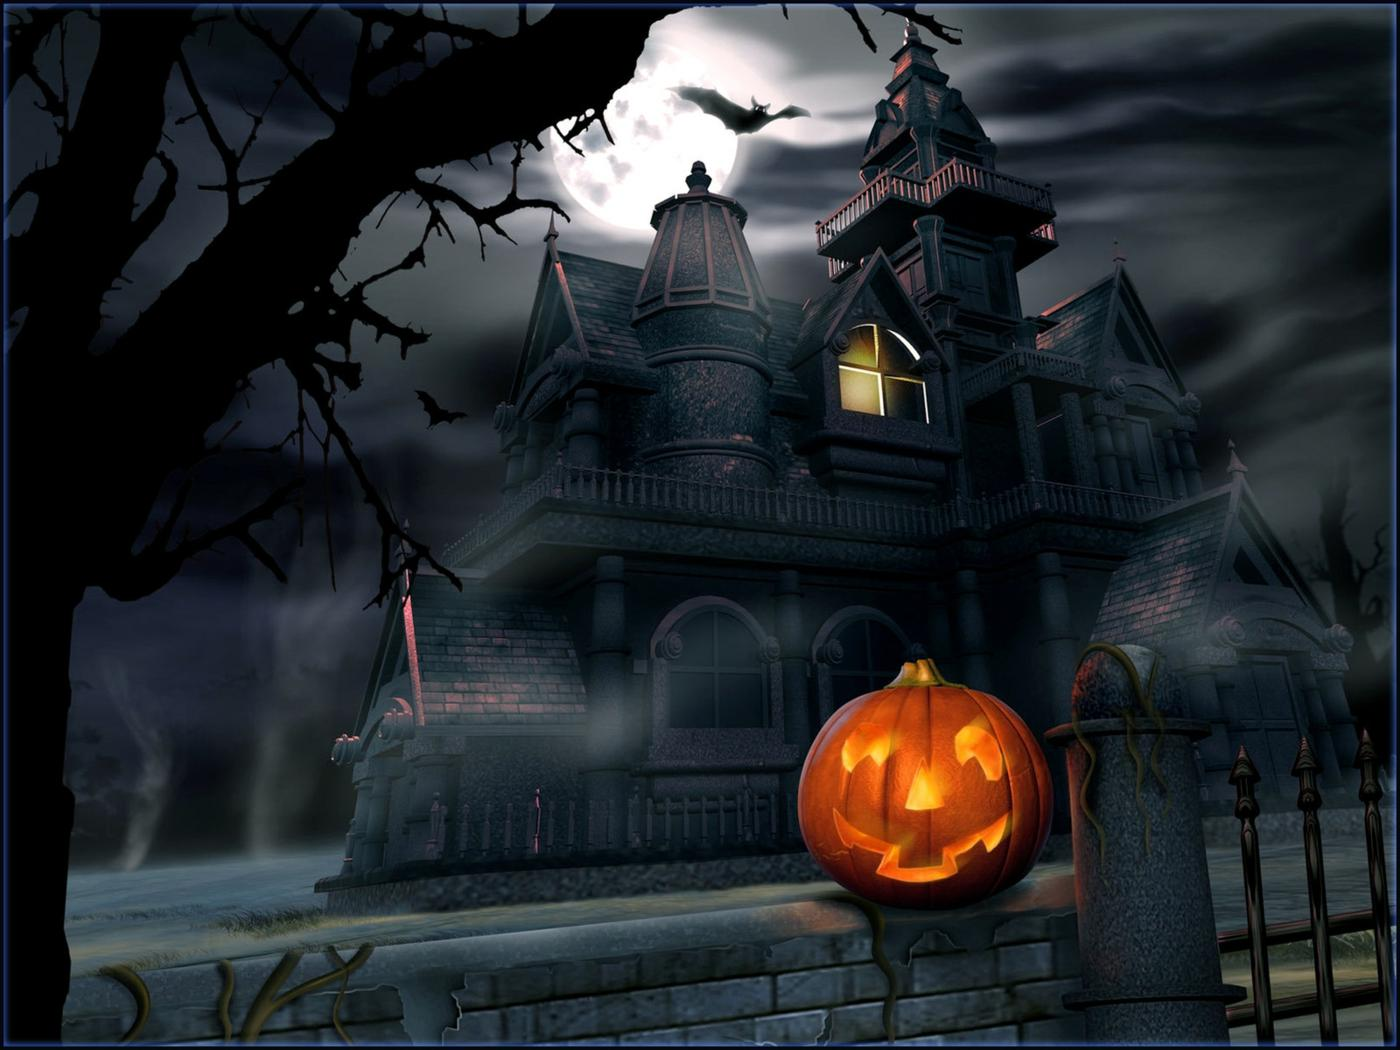 Halloween Desktop Wallpapers Free - Wallpaper Cave